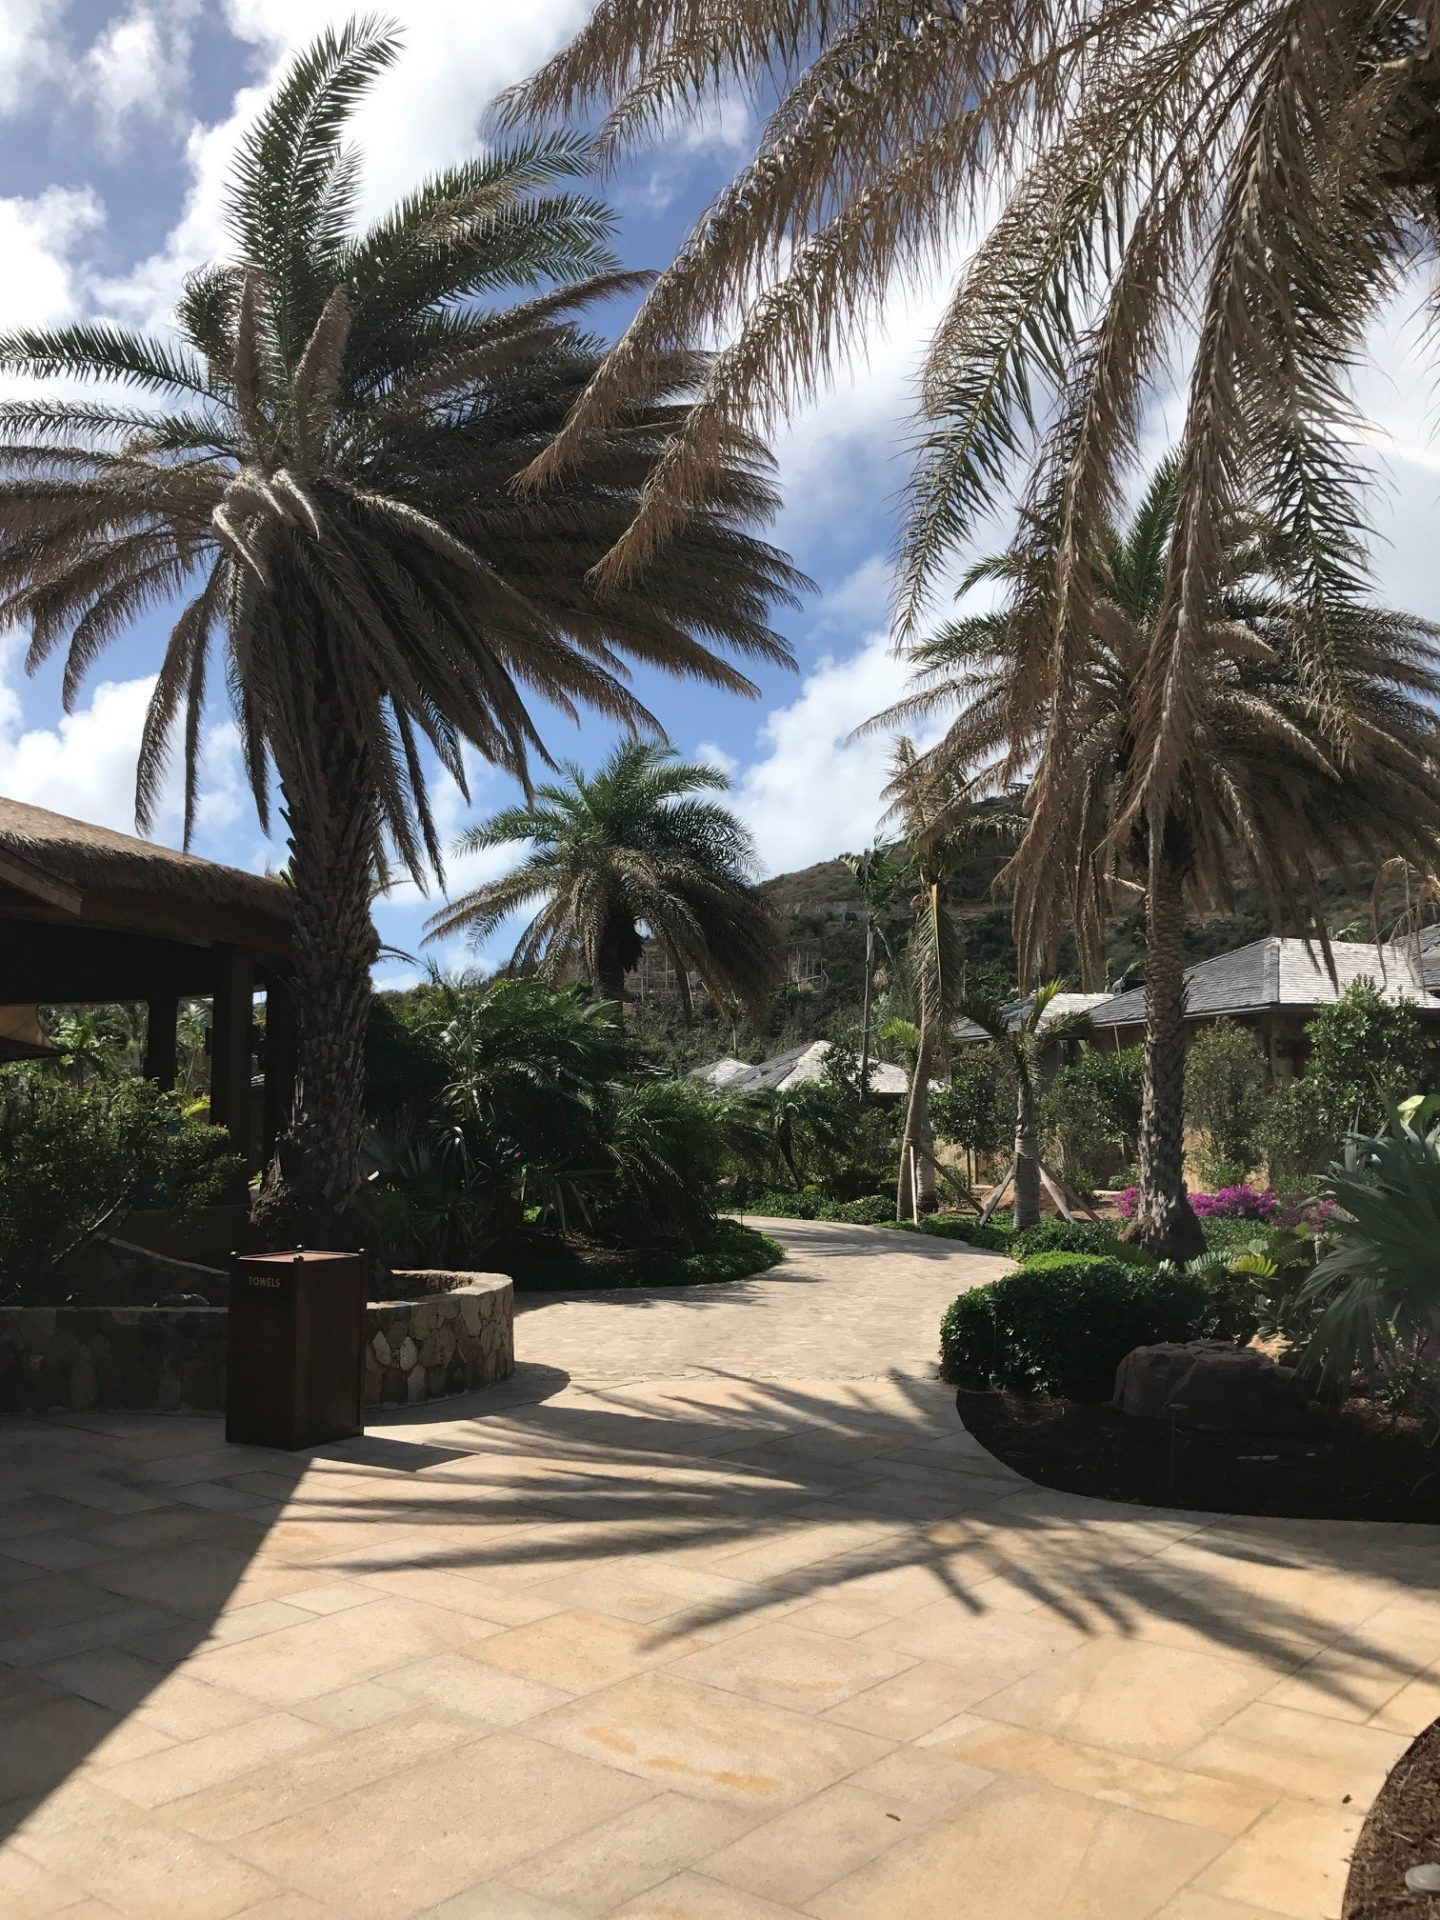 A sneak peek inside Oil Nut Bay in the British Virgin Islands. One of the most exclusive and beautiful beach resorts in the Caribbean.